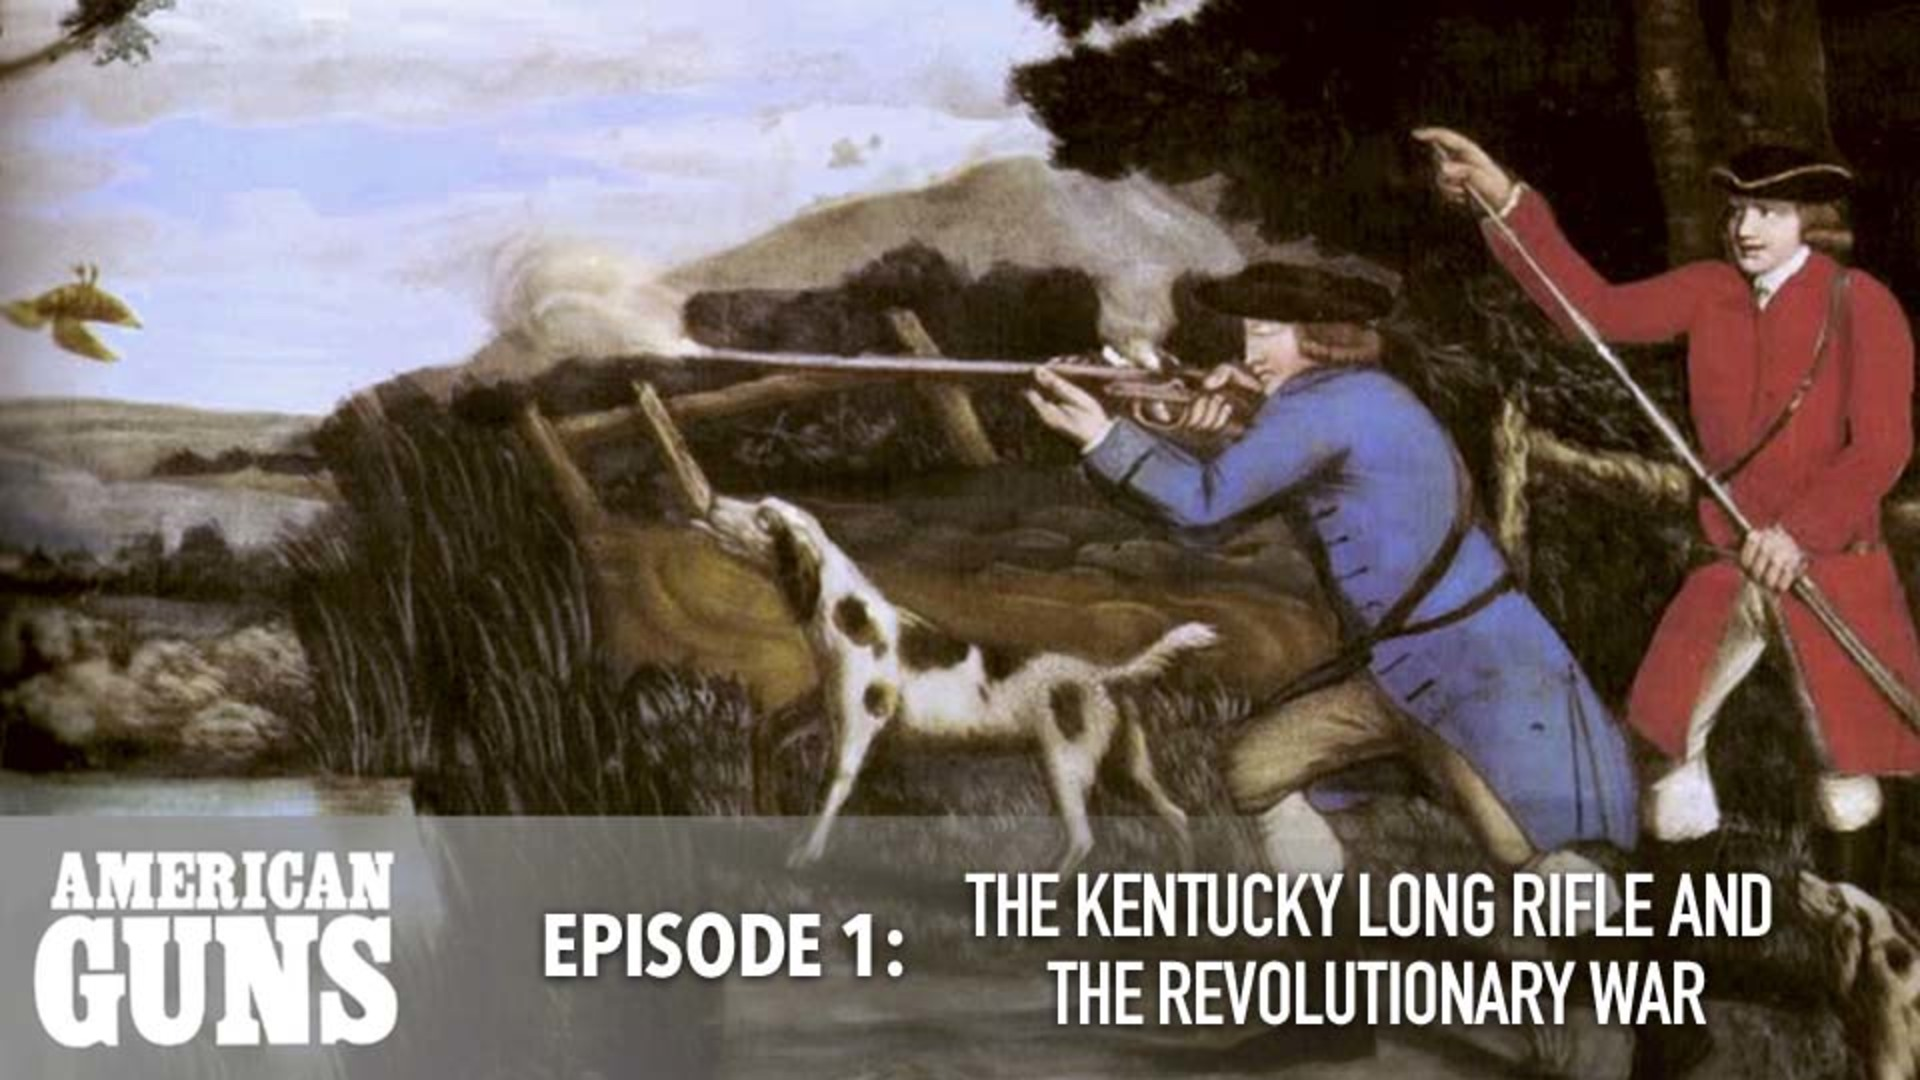 American Guns - Episode 1: The Kentucky Long Rifle And The